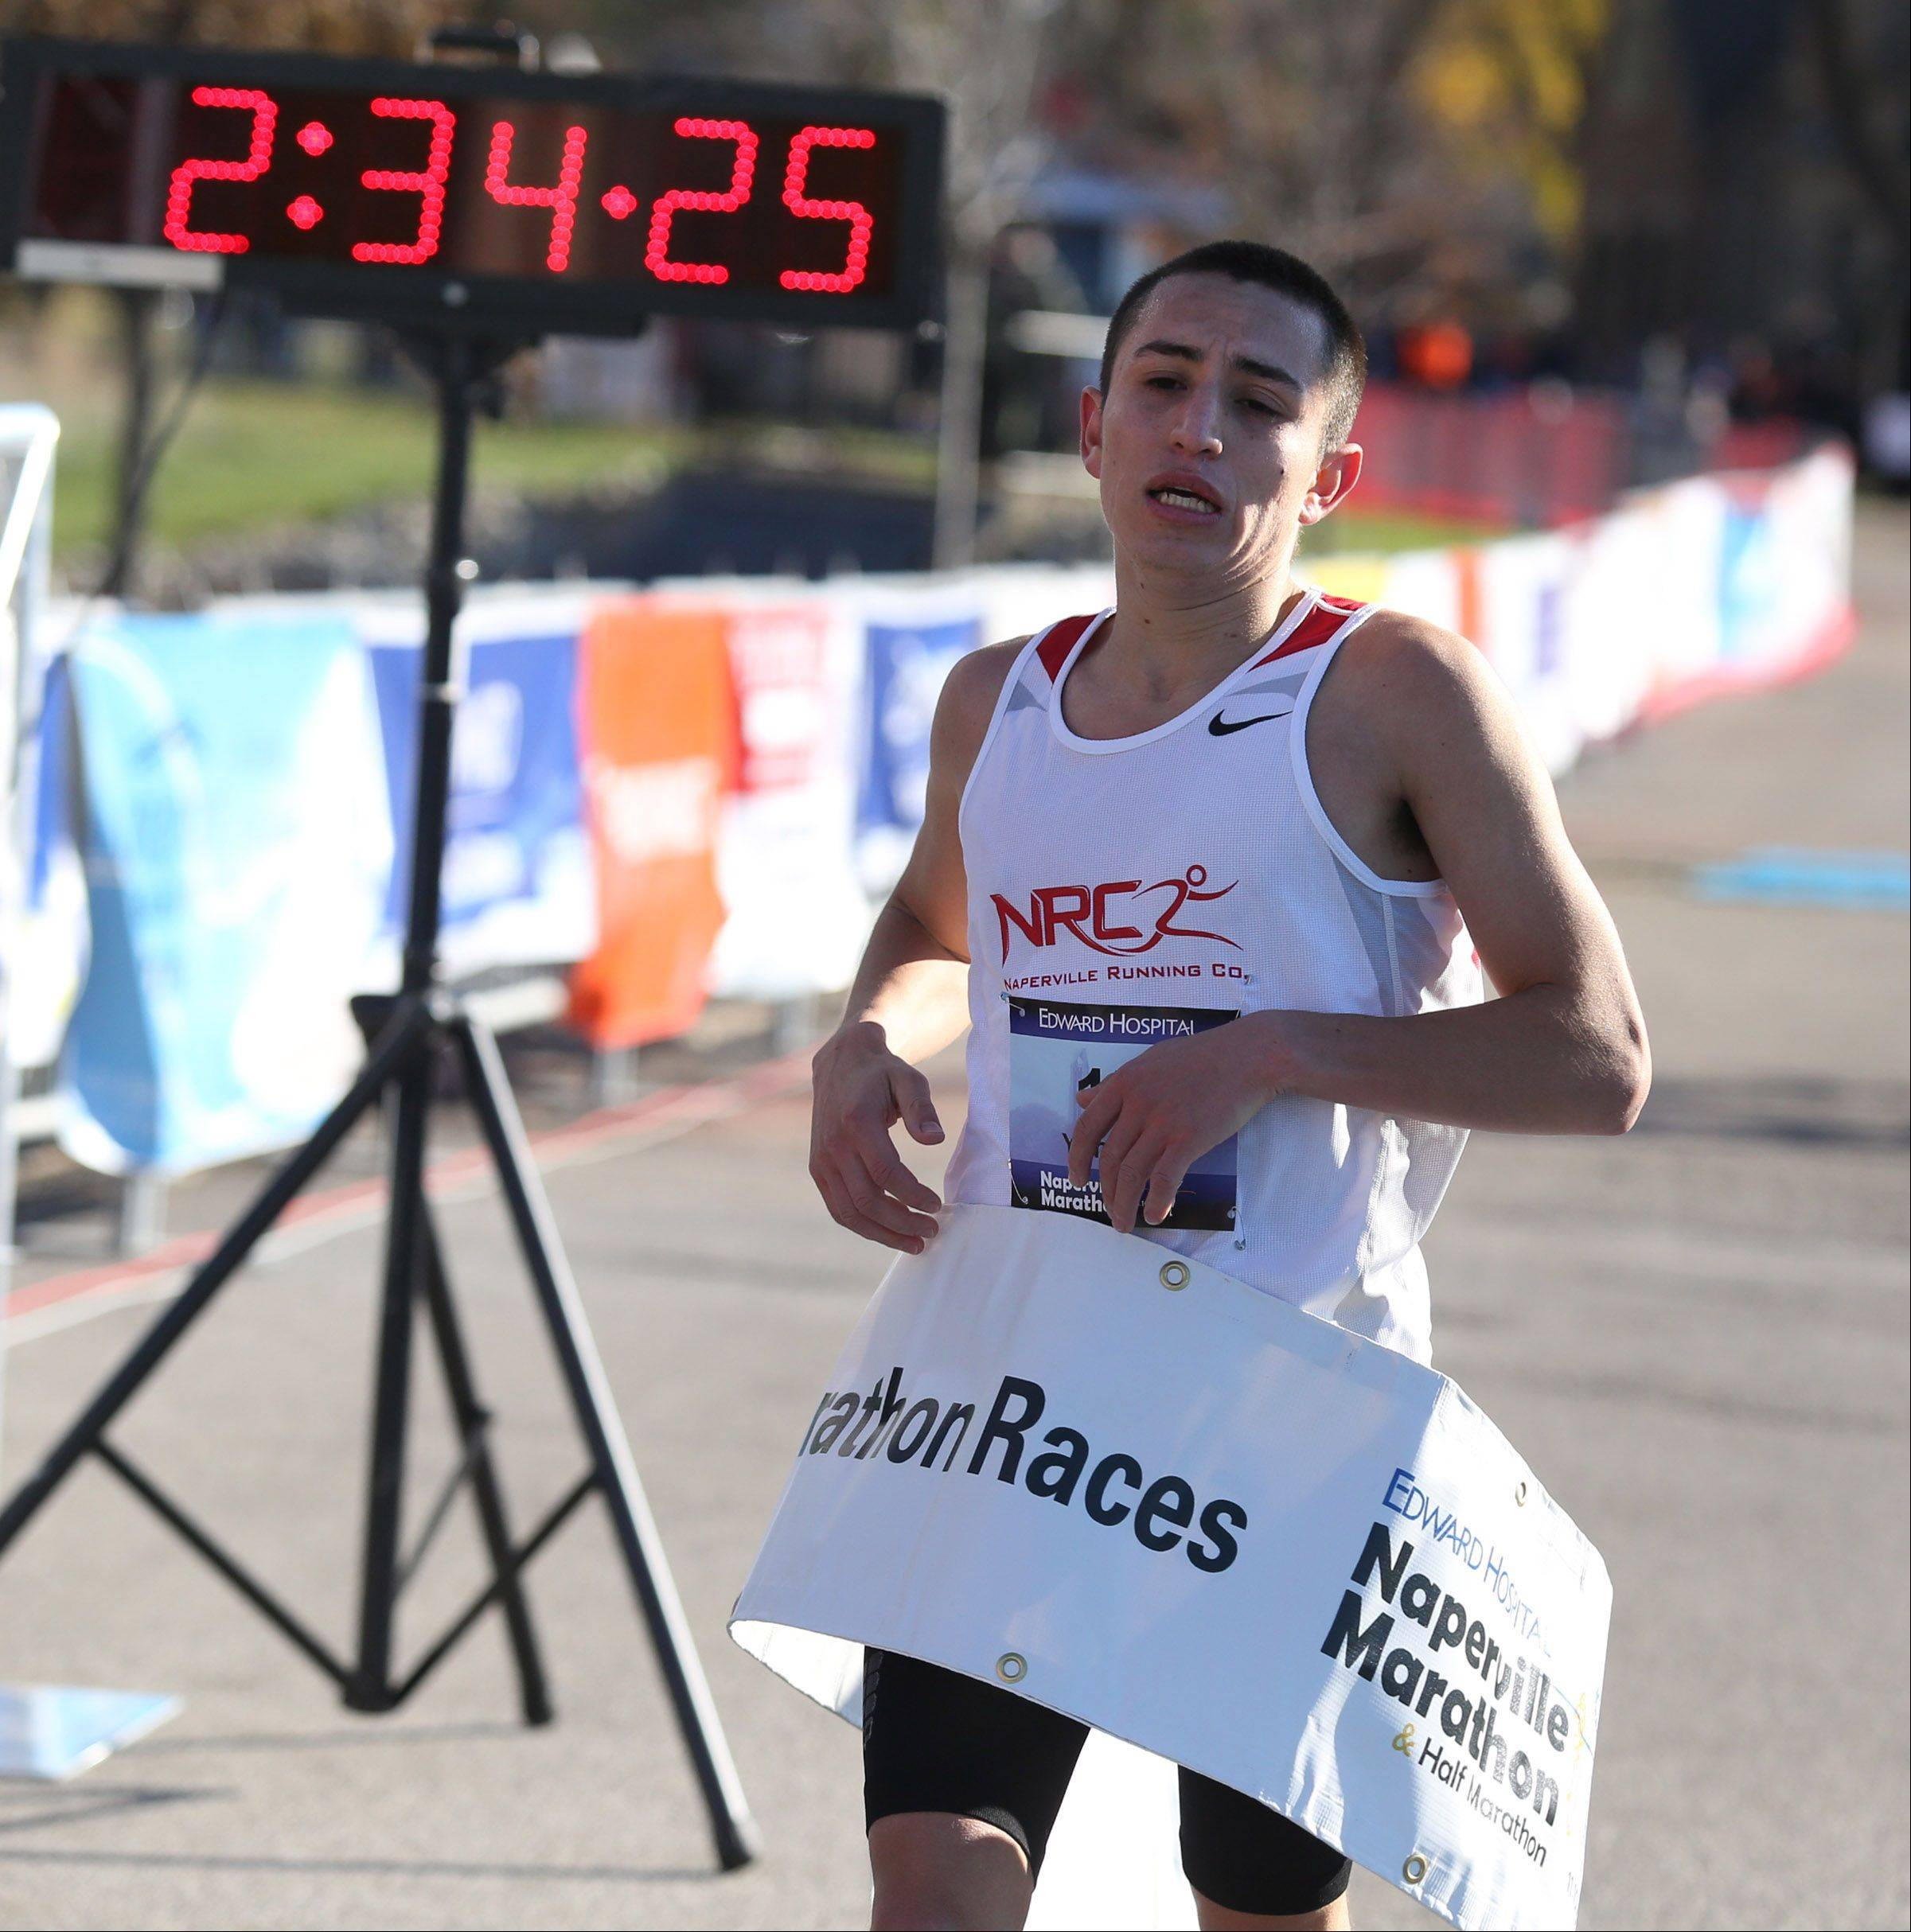 Yonatan Mascote of Naperville crossing the finish line first in the Edward Hospital Naperville Marathon on Sunday, November 10, 2013.